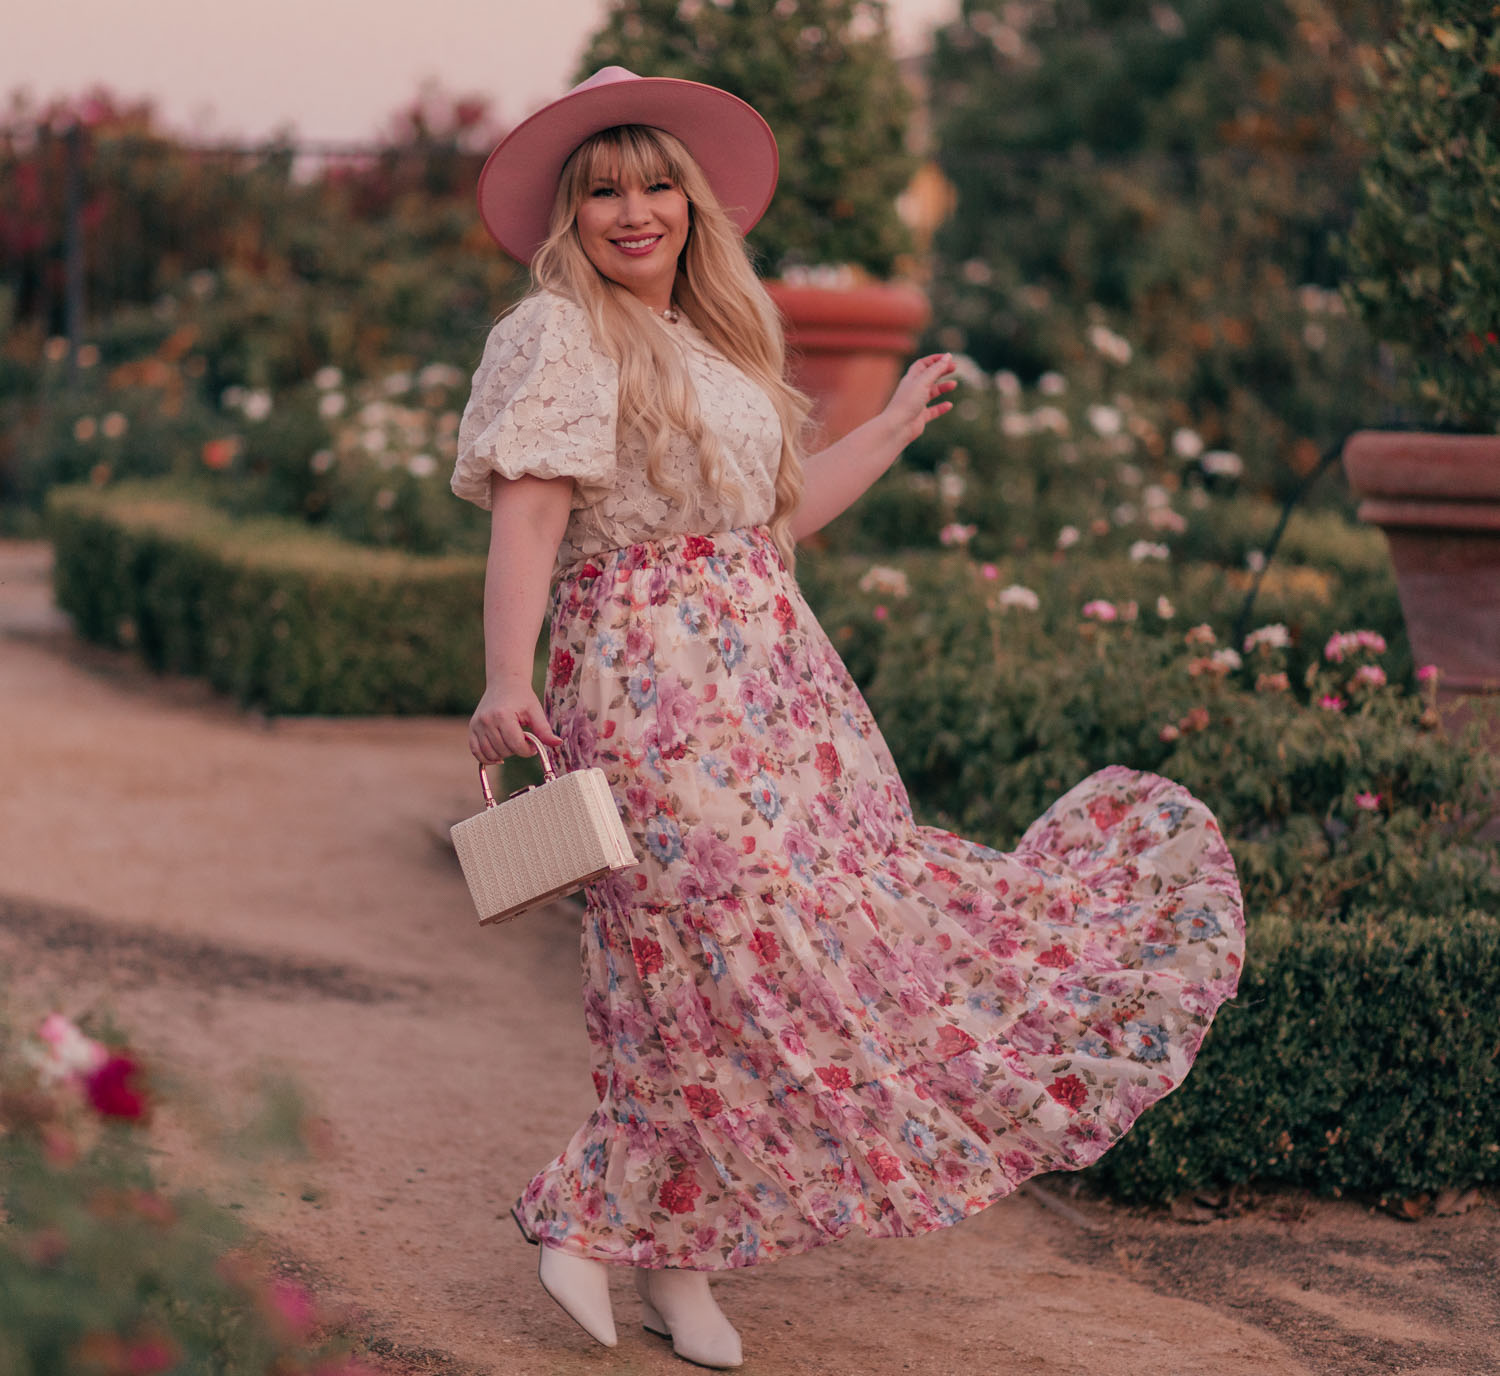 Feminine Fashion Blogger Elizabeth Hugen of Lizzie in Lace shares her top 5 Feminine Summer Essentials for the Girly Girl including a Chicwish Floral Maxi Skirt